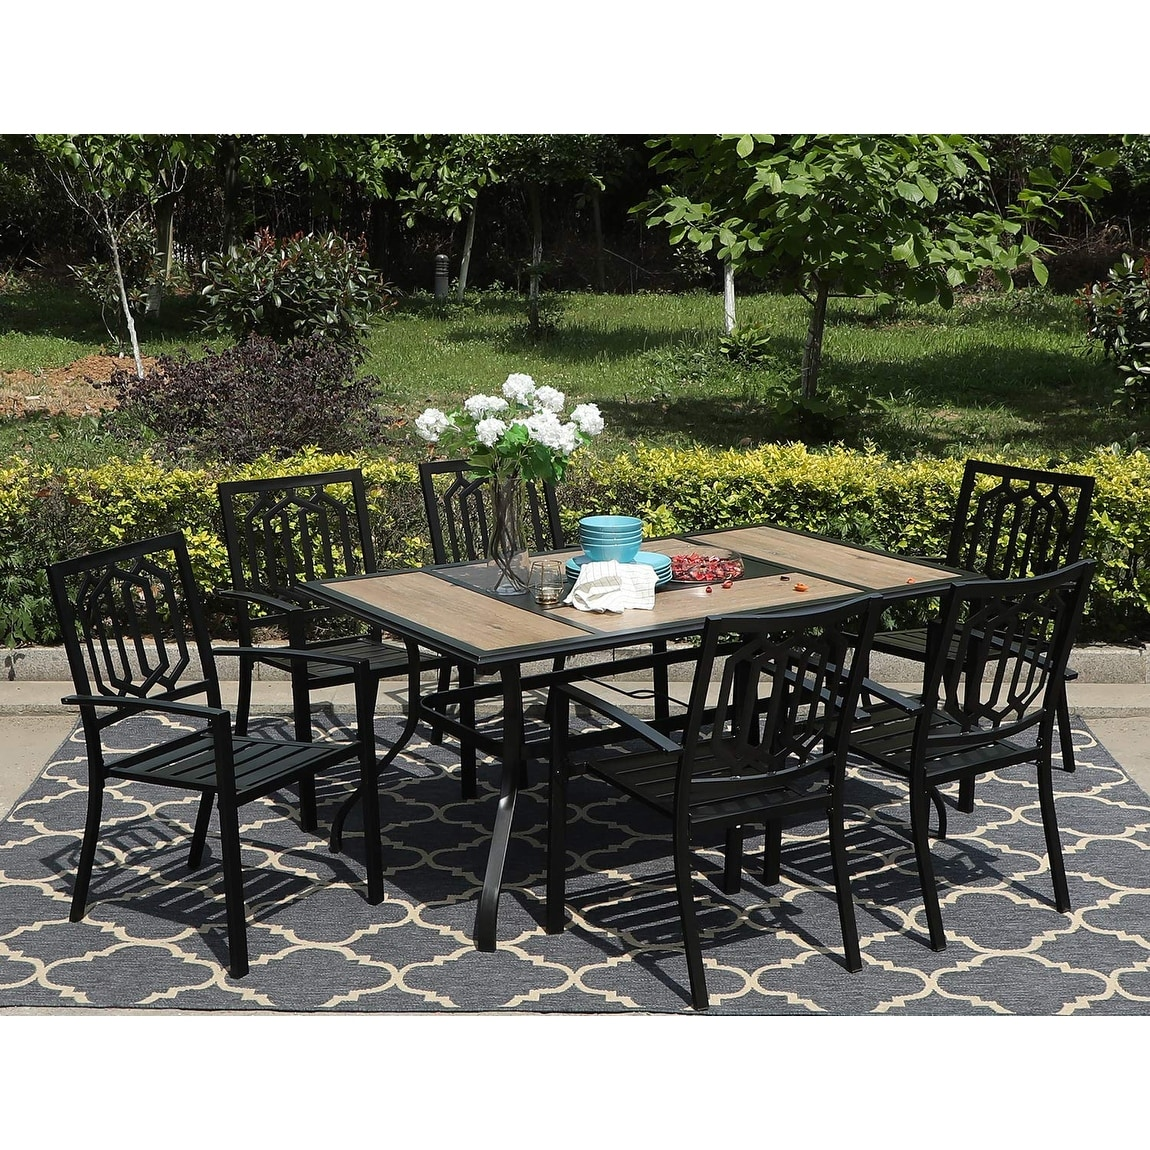 sophia william 7 pieces patio dining set steel outdoor furniture set with 6 steel garden chairs and 1 patio umbrella table